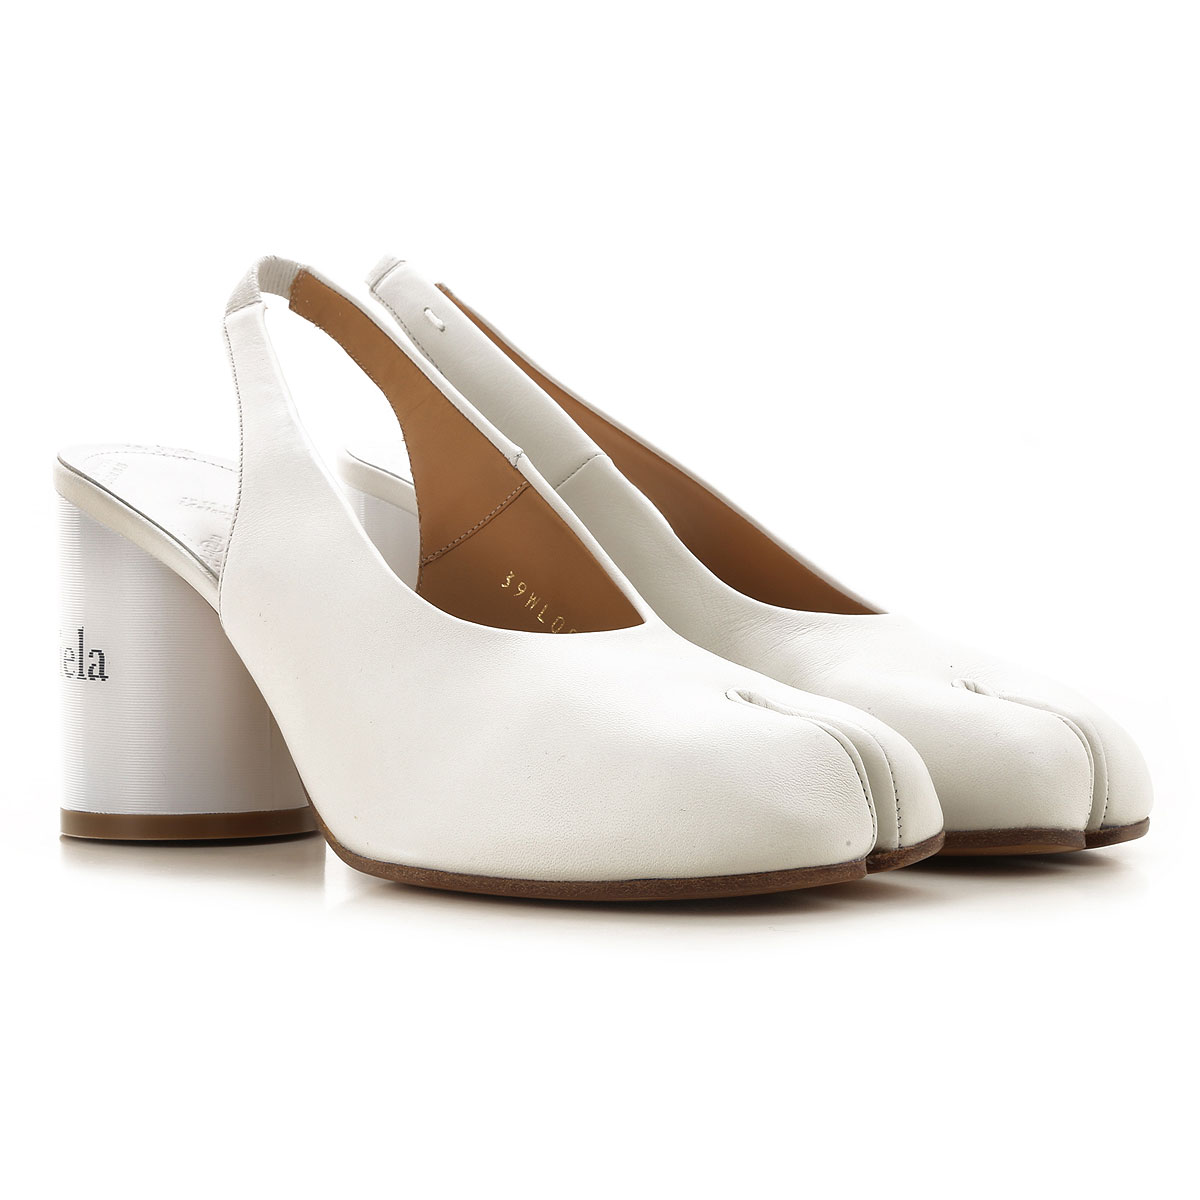 Maison Martin Margiela Pumps & High Heels for Women On Sale in Outlet, White, Leather, 2019, 8